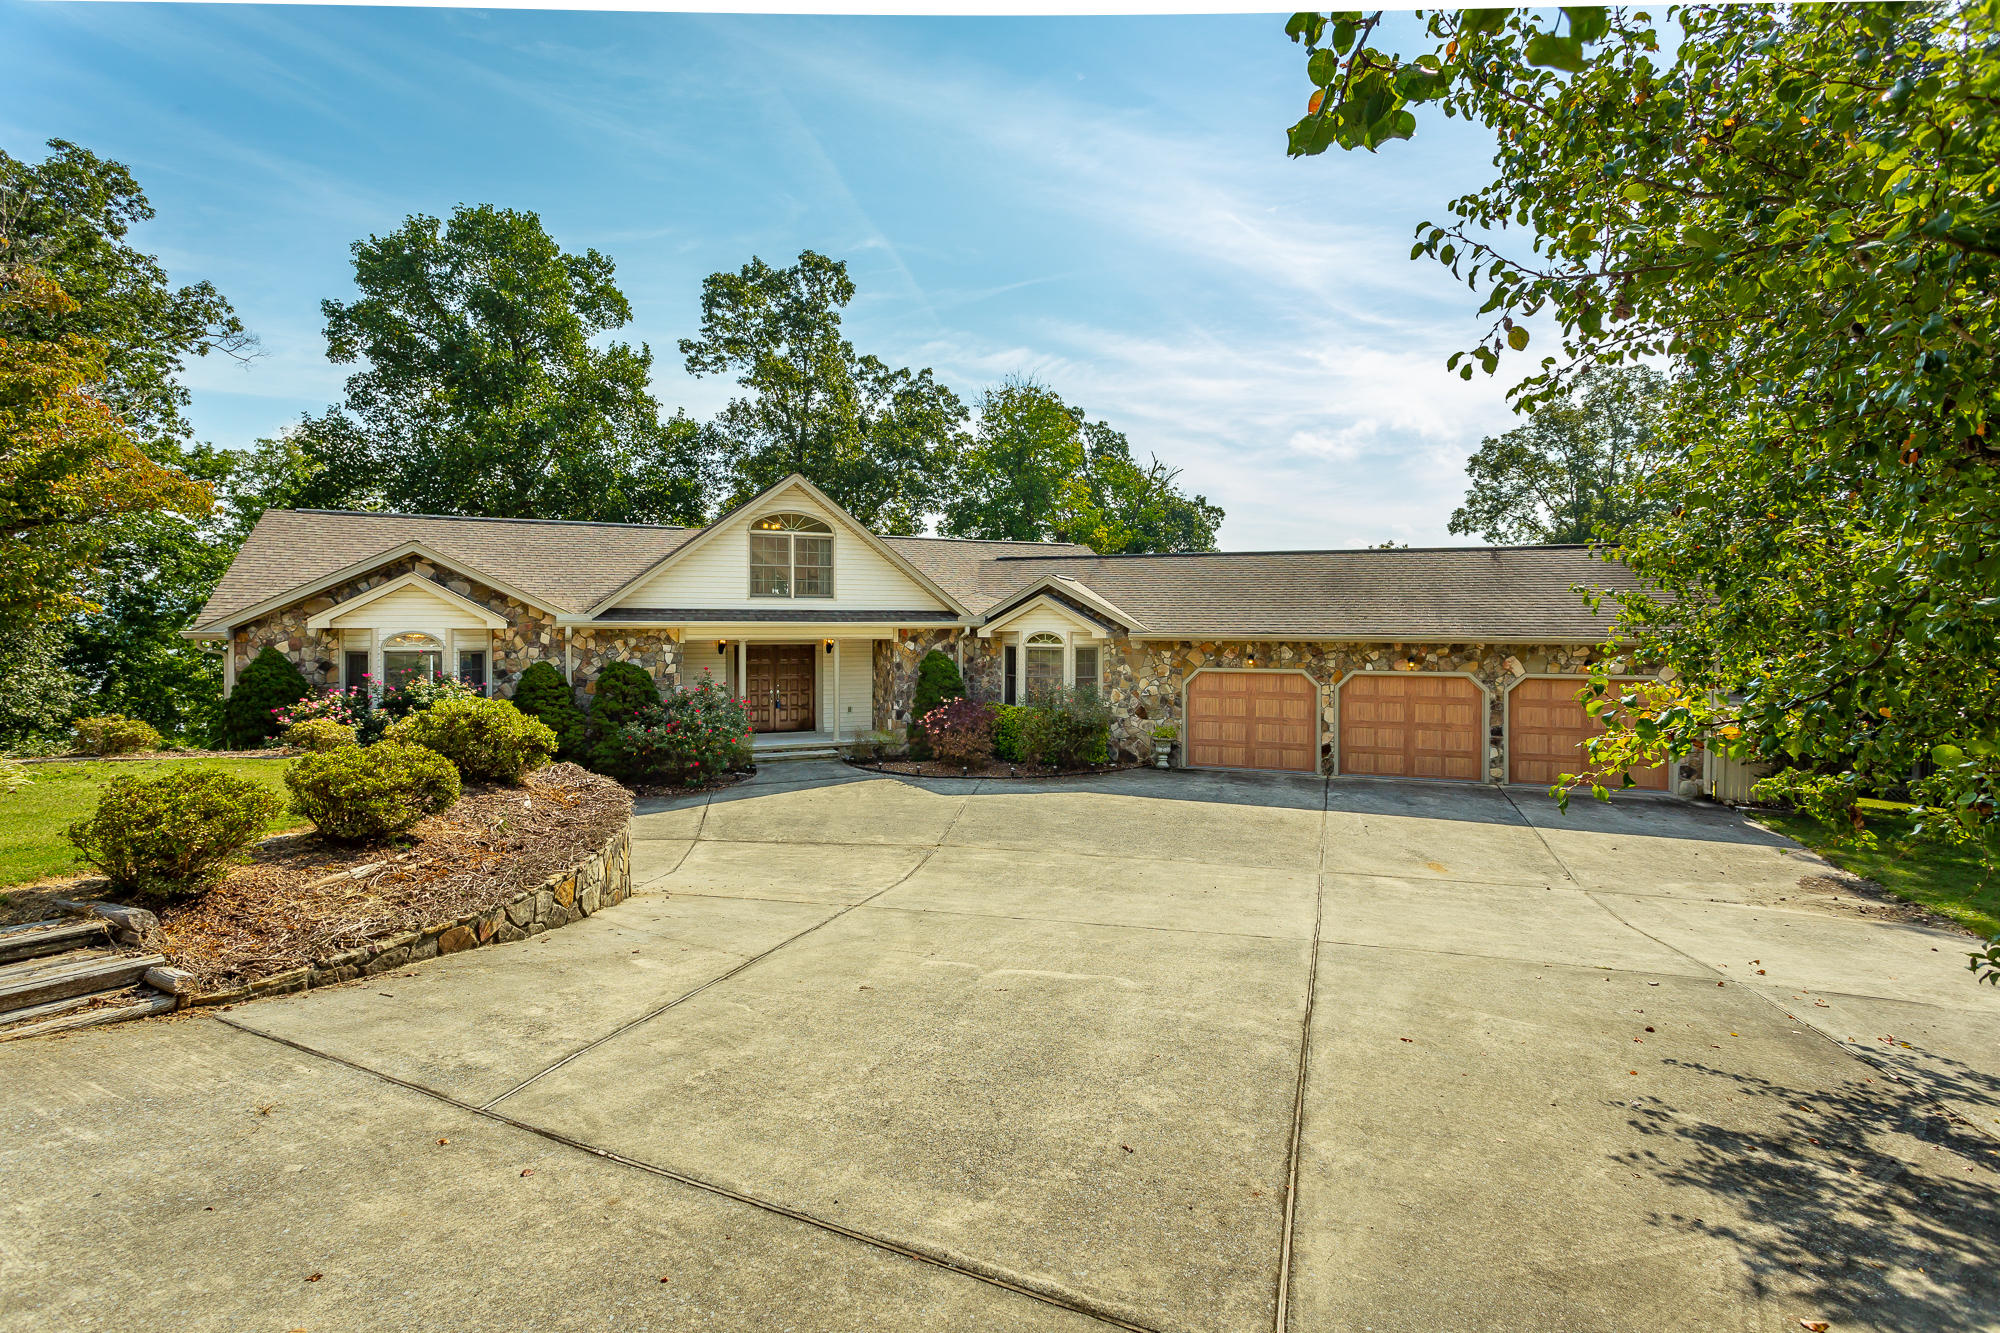 3538 Lee Pike, Soddy Daisy, TN 37379